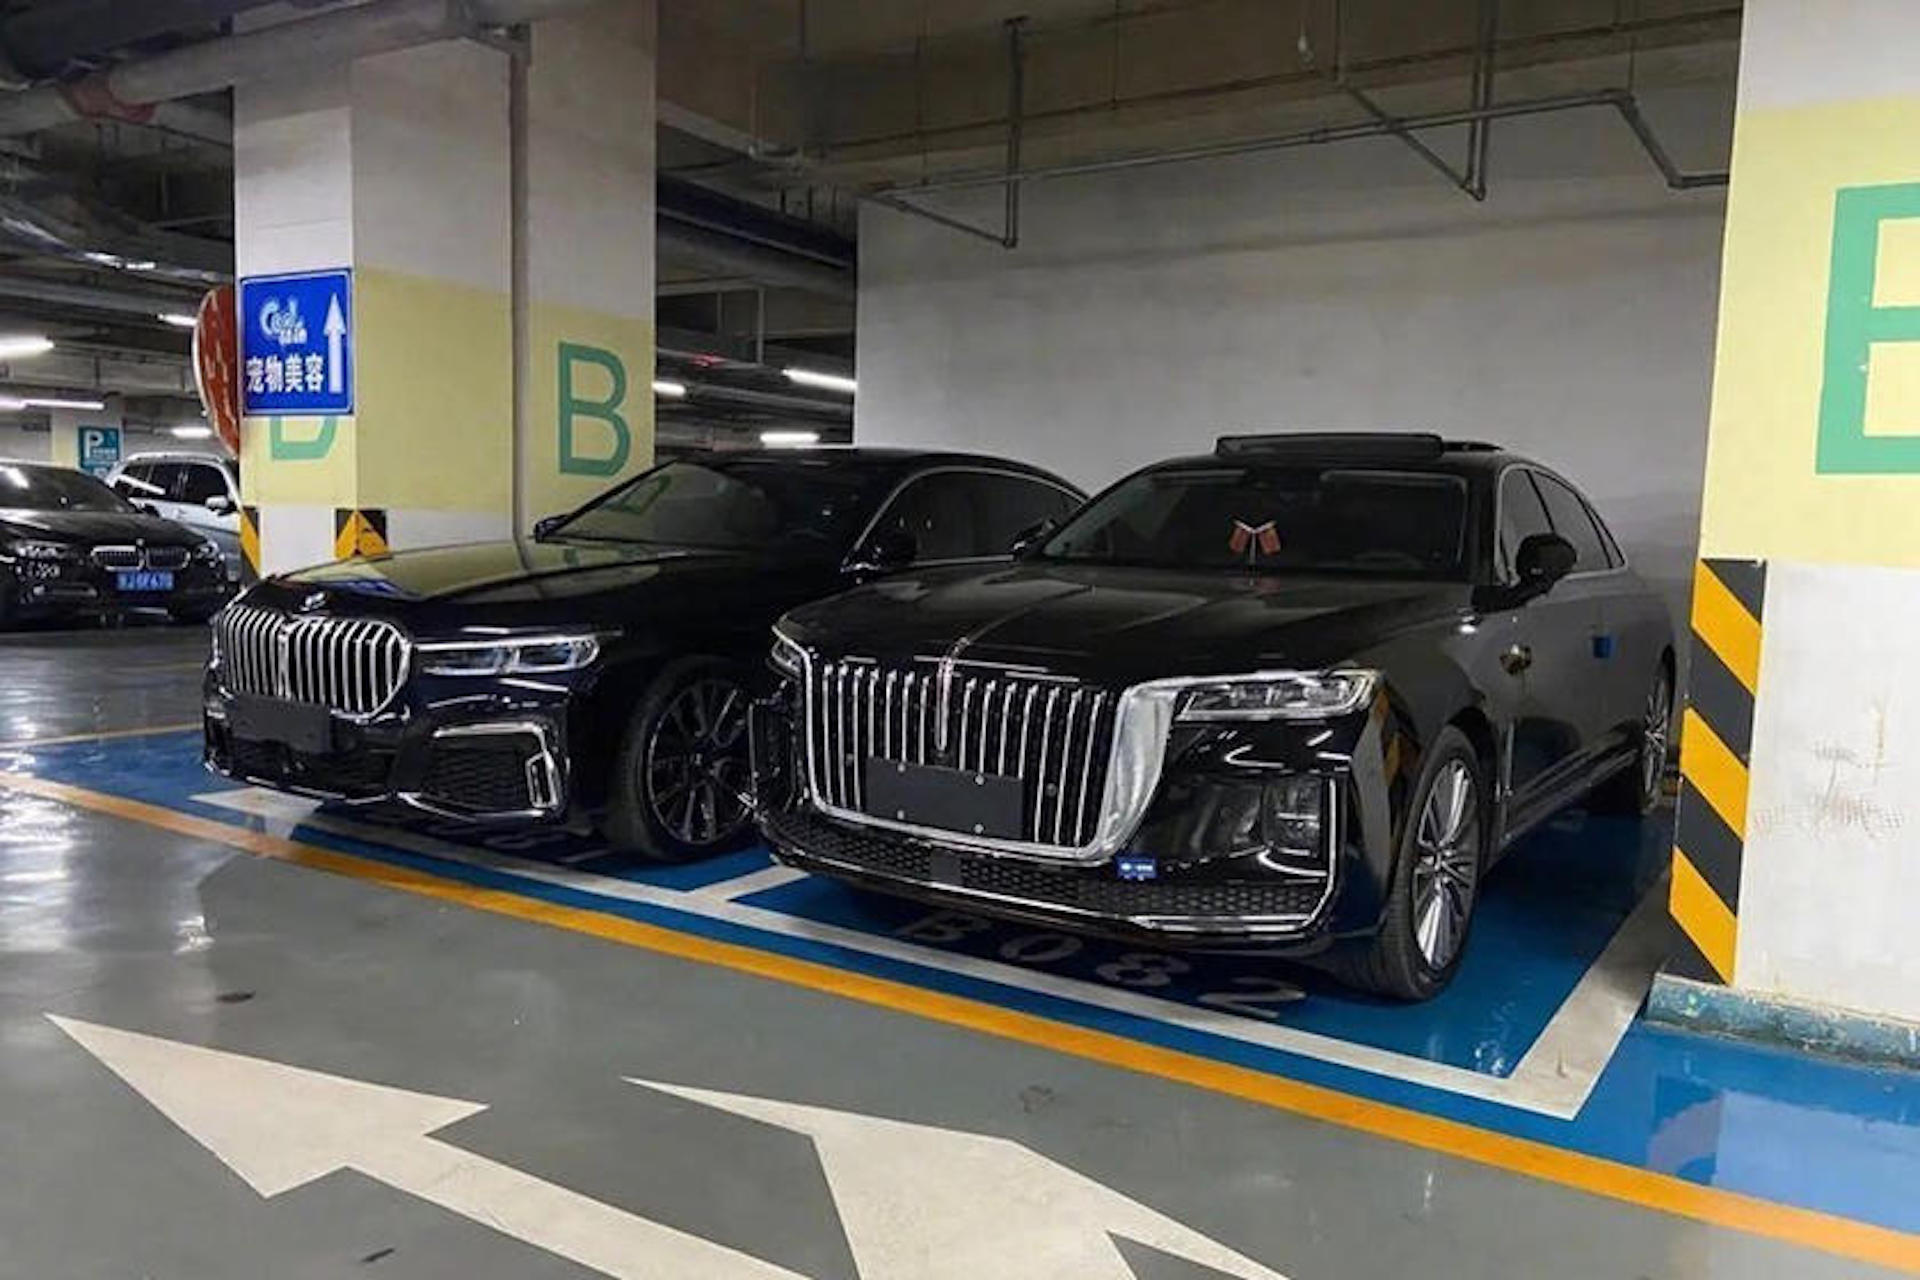 Copia China Bmw Serie 7 Parrilla Hongqi 1